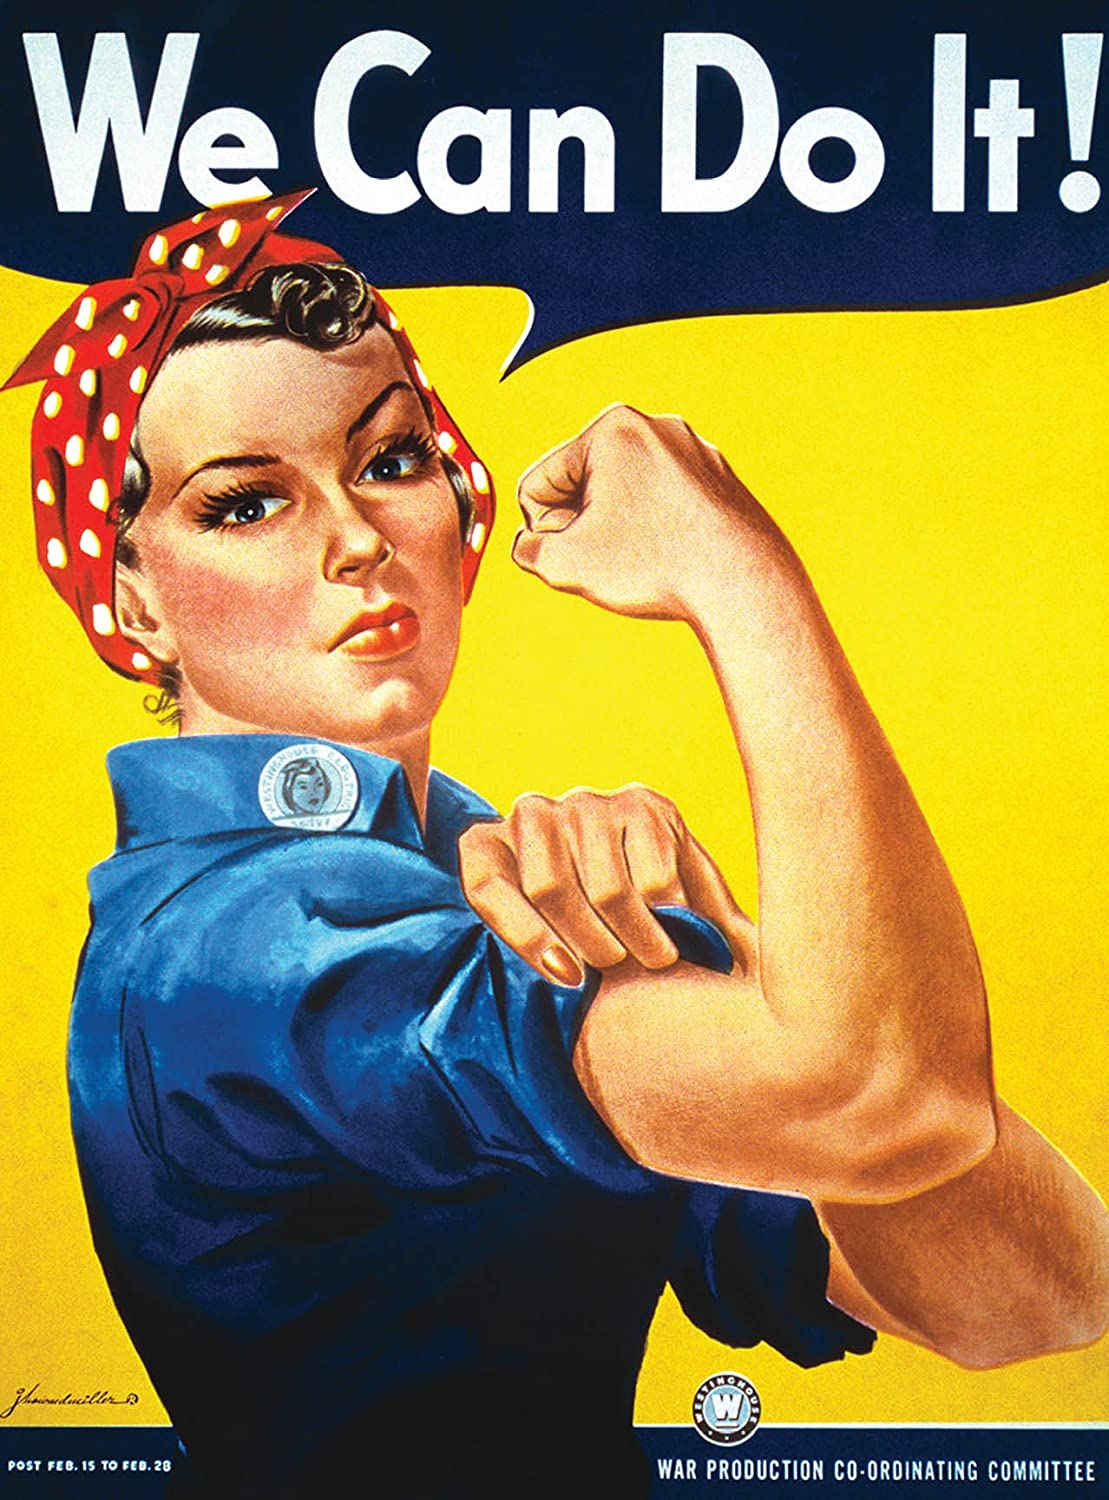 Palace Learning We Can Do It Poster - Rosie The Riveter - Westinghouse Girl - World War 2 Poster - WW2 - Laminated (18 x 24)